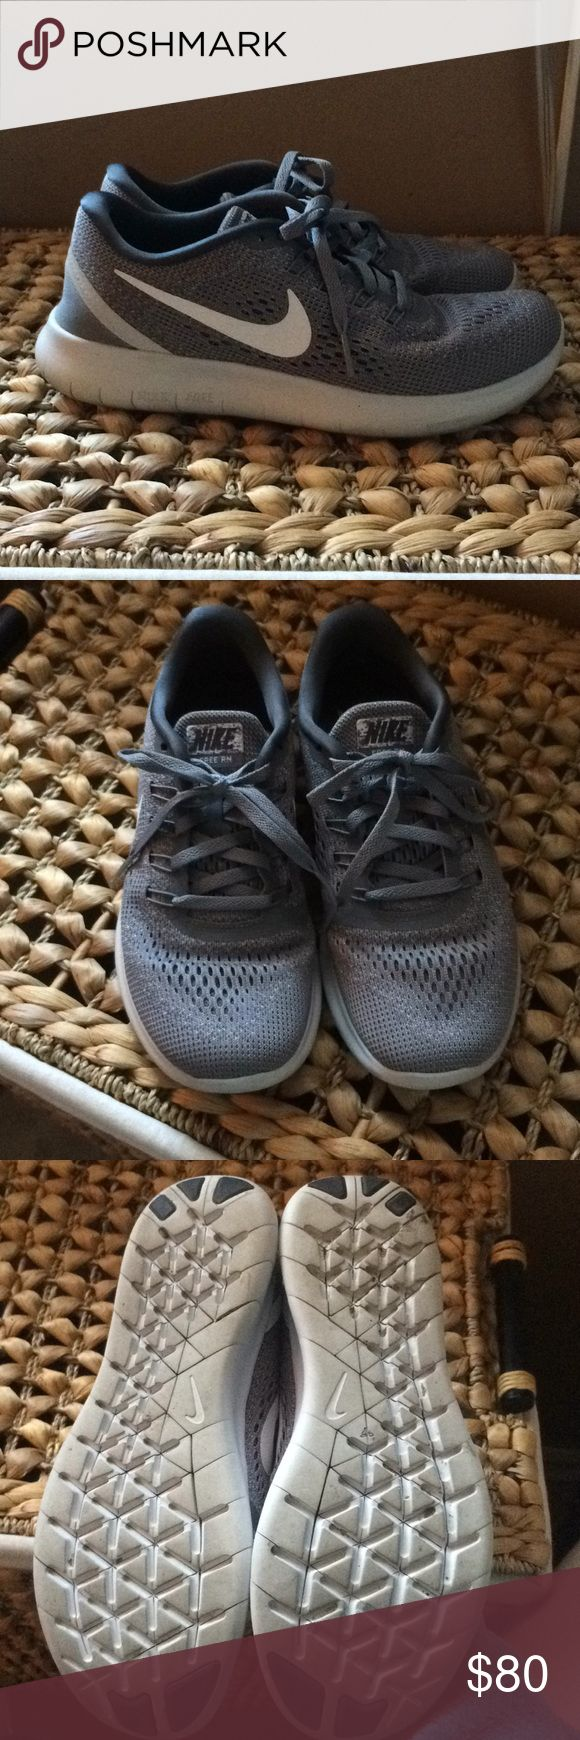 Nike Free Runners Nike Free Runners only worn a few times. I have too many running shoes and use the others more so getting rid of these ones. Pretty gray color. Great condition. Only real sign of wear is on the bottom Nike Shoes Sneakers